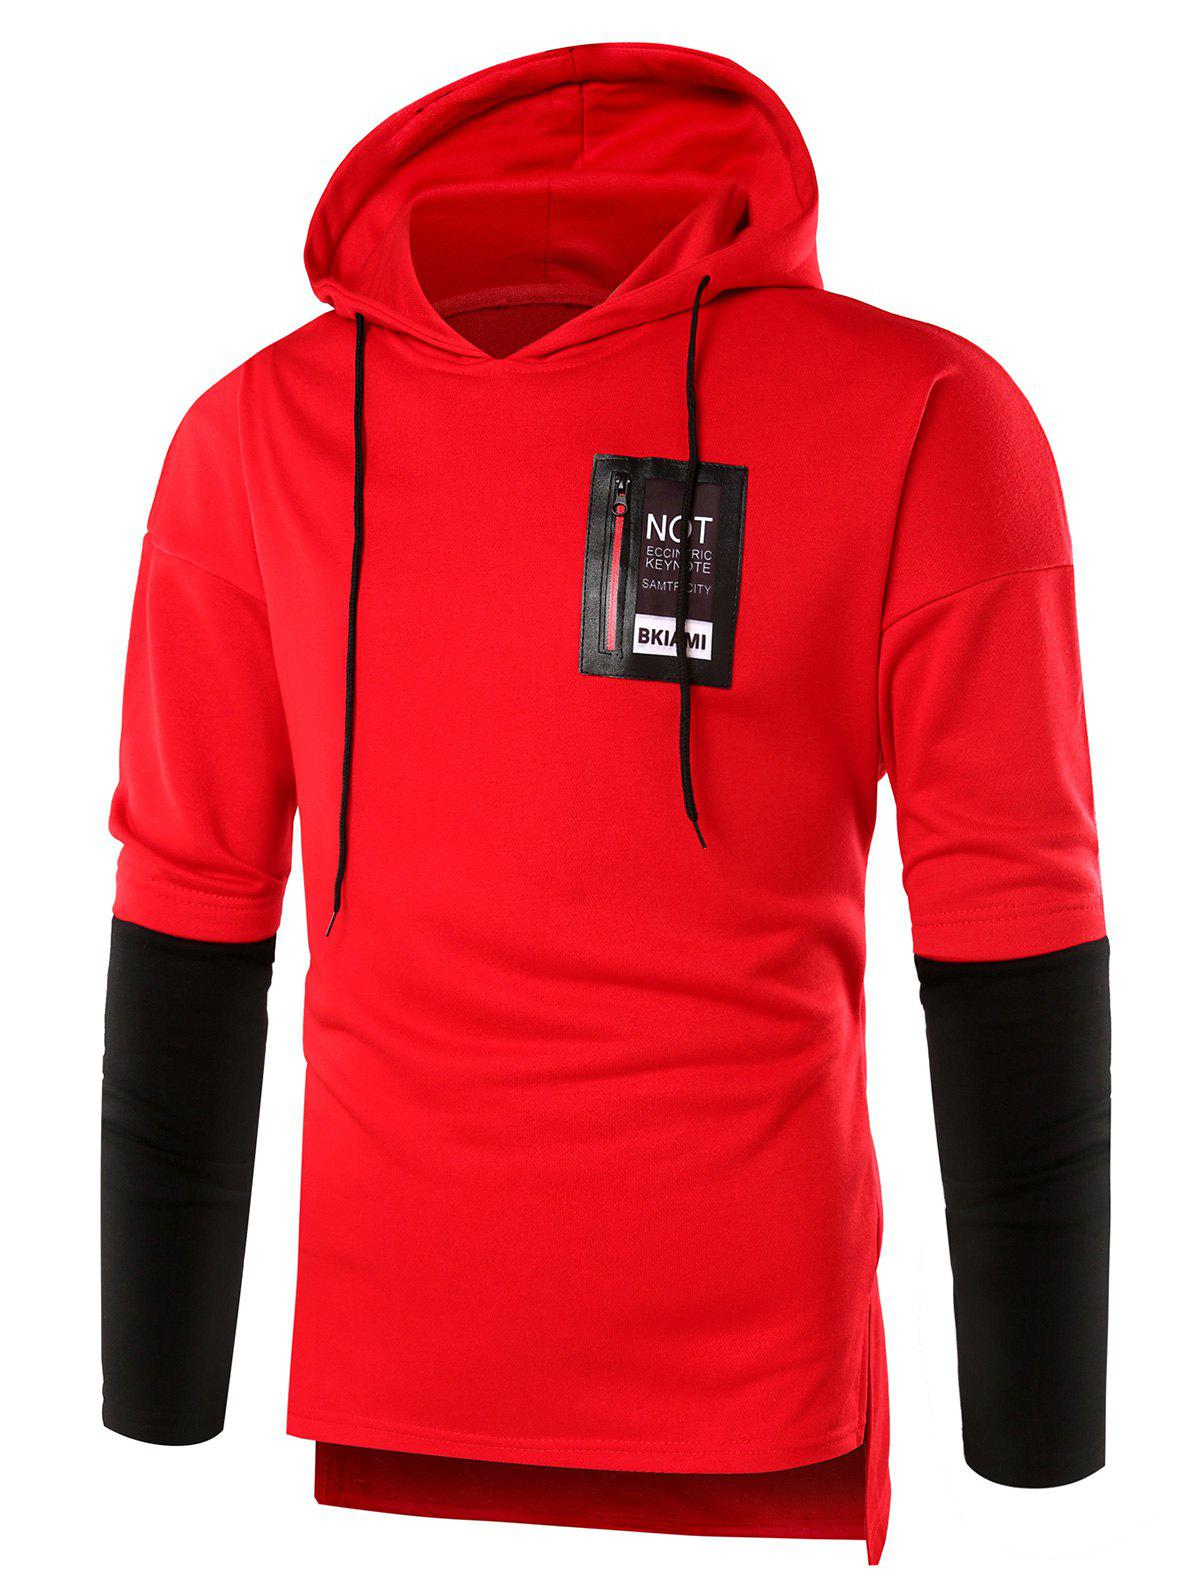 PU Leather Applique Braid Embellished Hoodie - RED XL